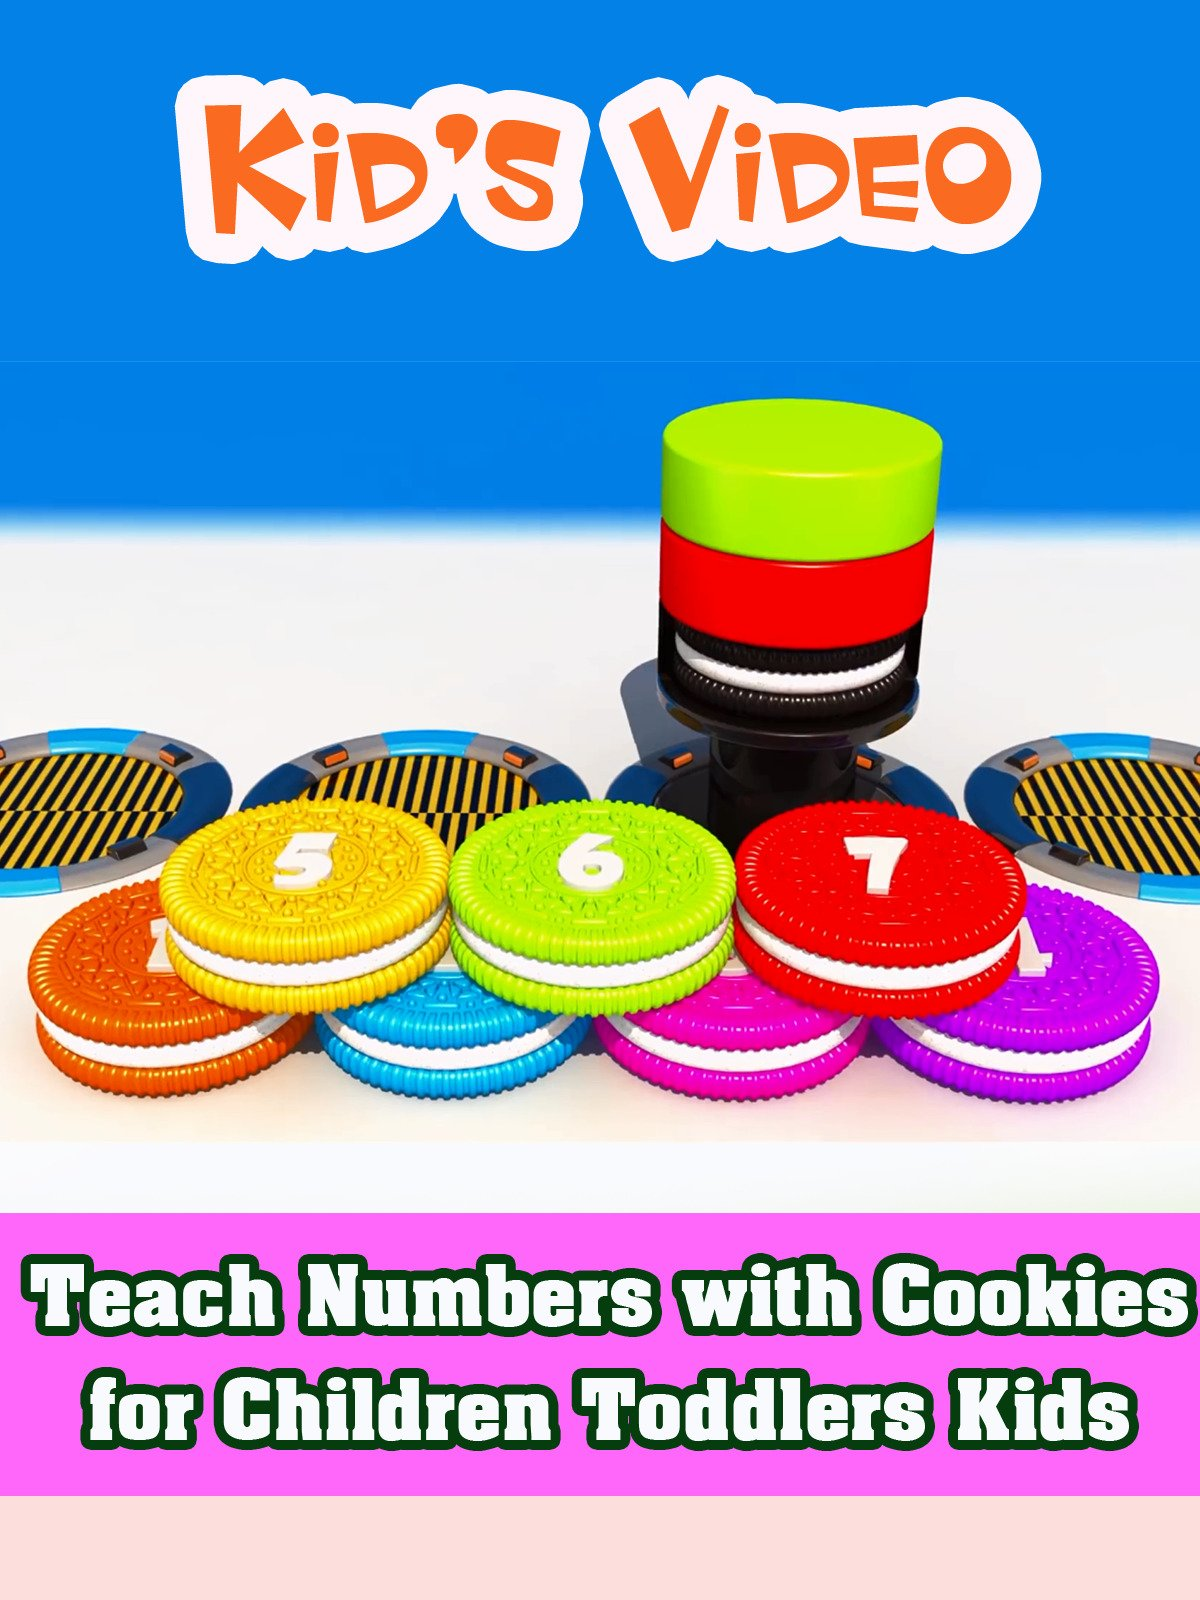 Teach Numbers with Cookies for Children Toddlers Kids